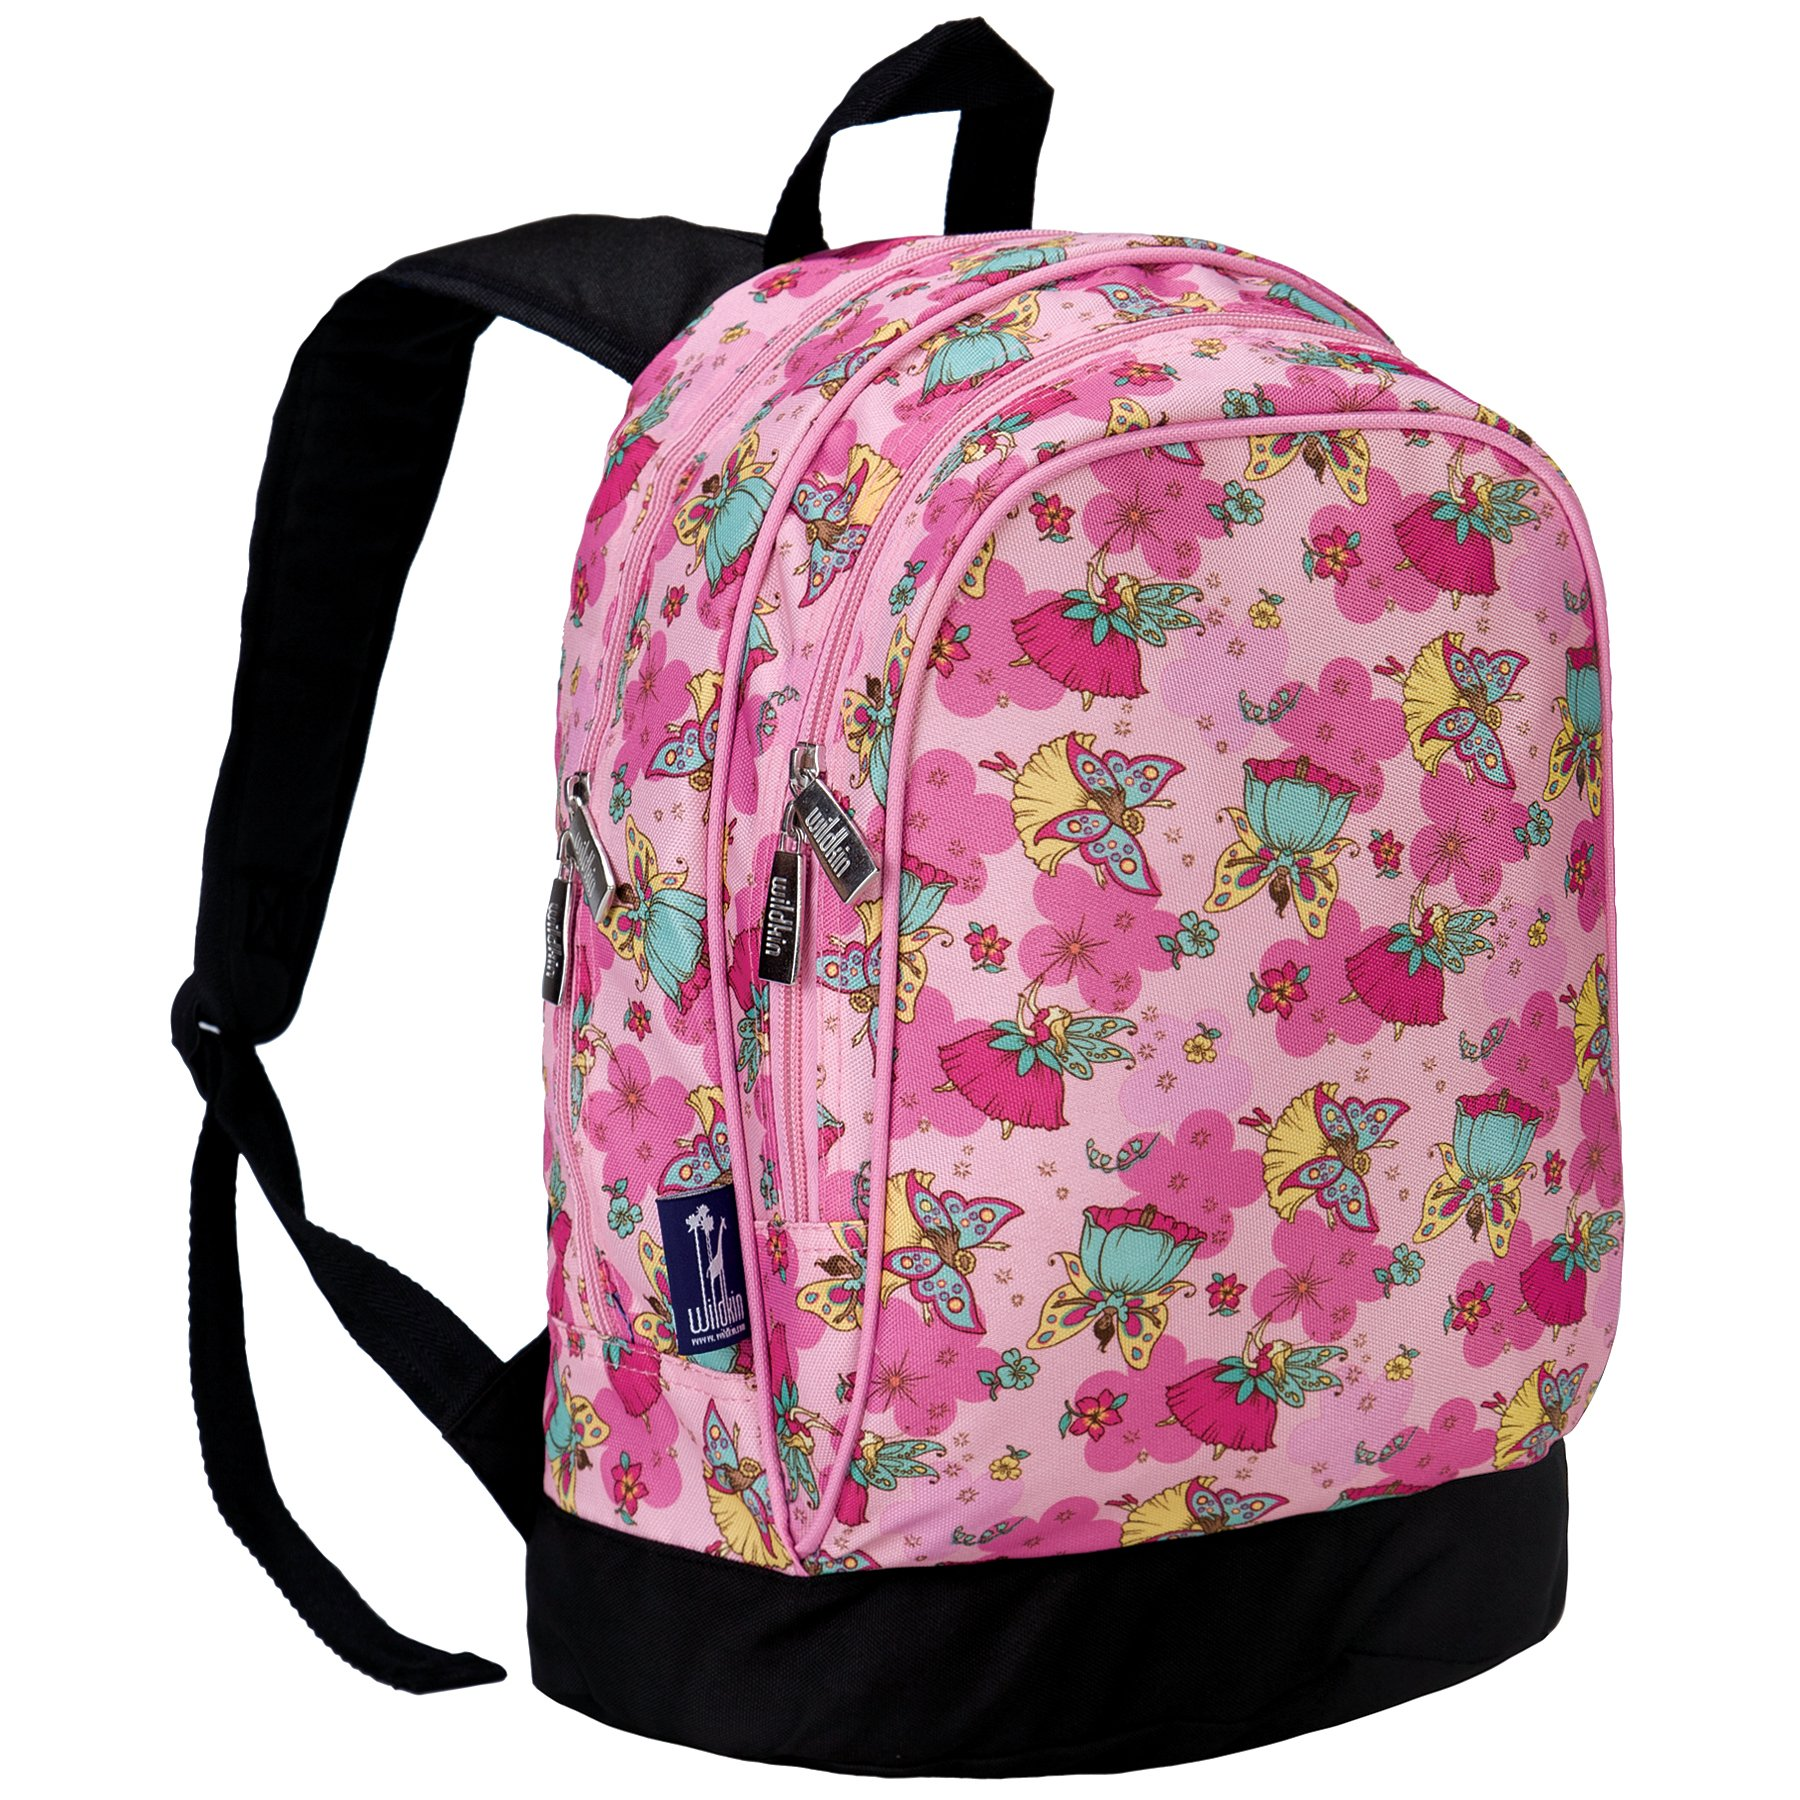 Wildkin 15 Inch Backpack, Extra Durable Backpack with Padded Straps and Interior Moisture-Resistant Lining, Perfect for School or Travel – Fairies